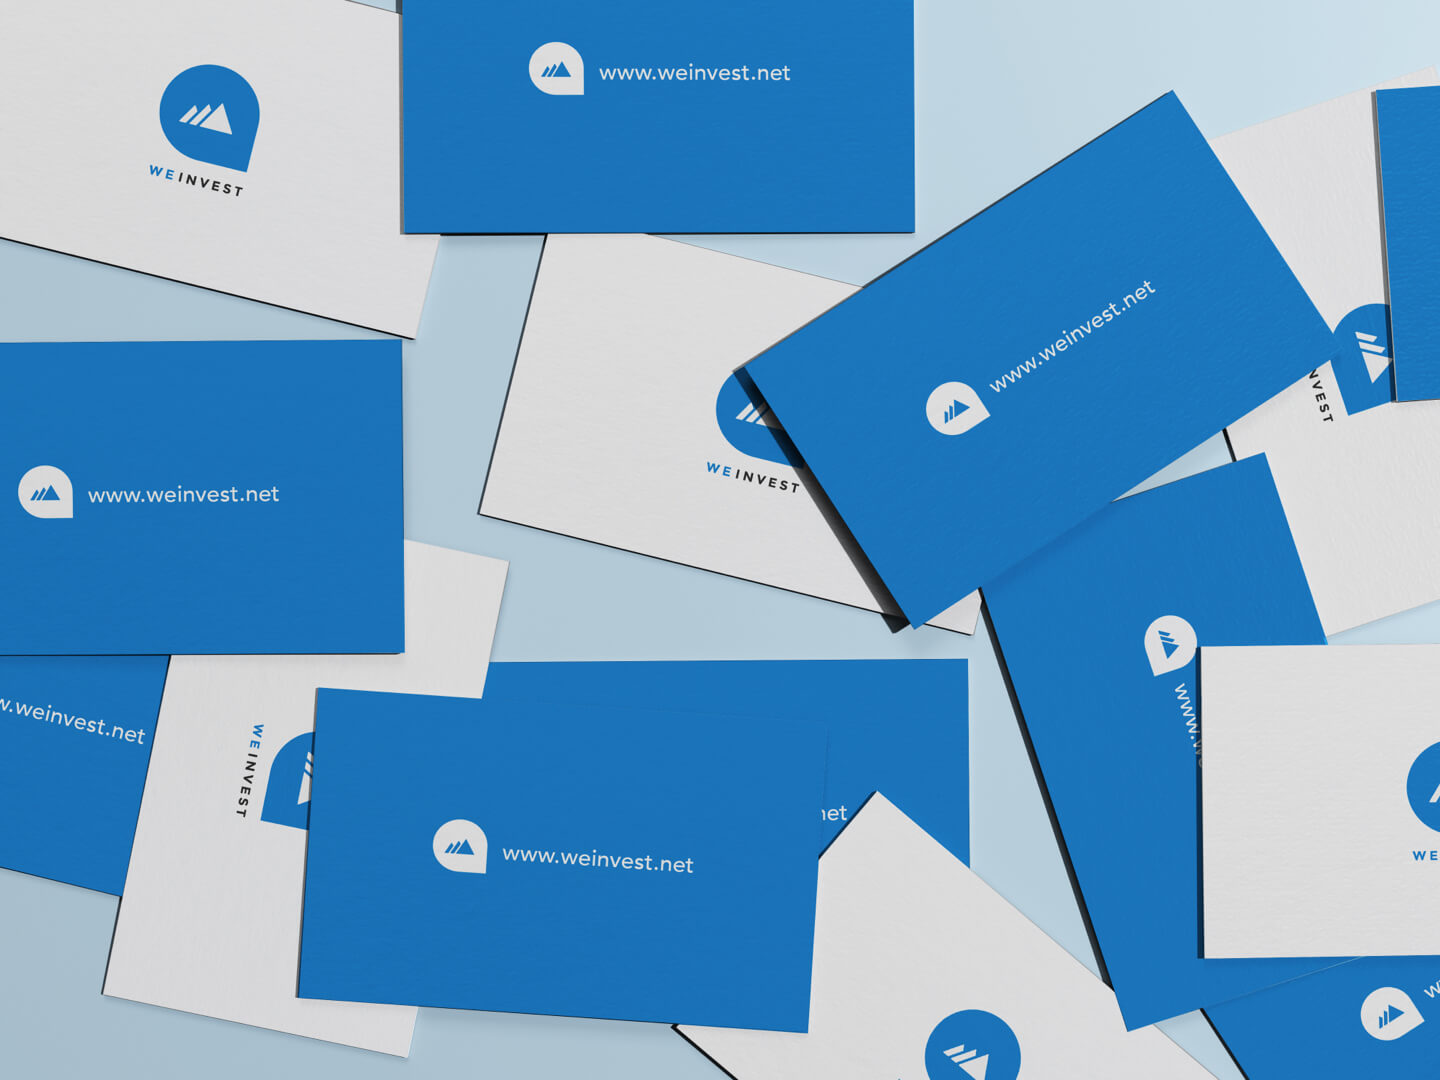 WeInvest Business Cards